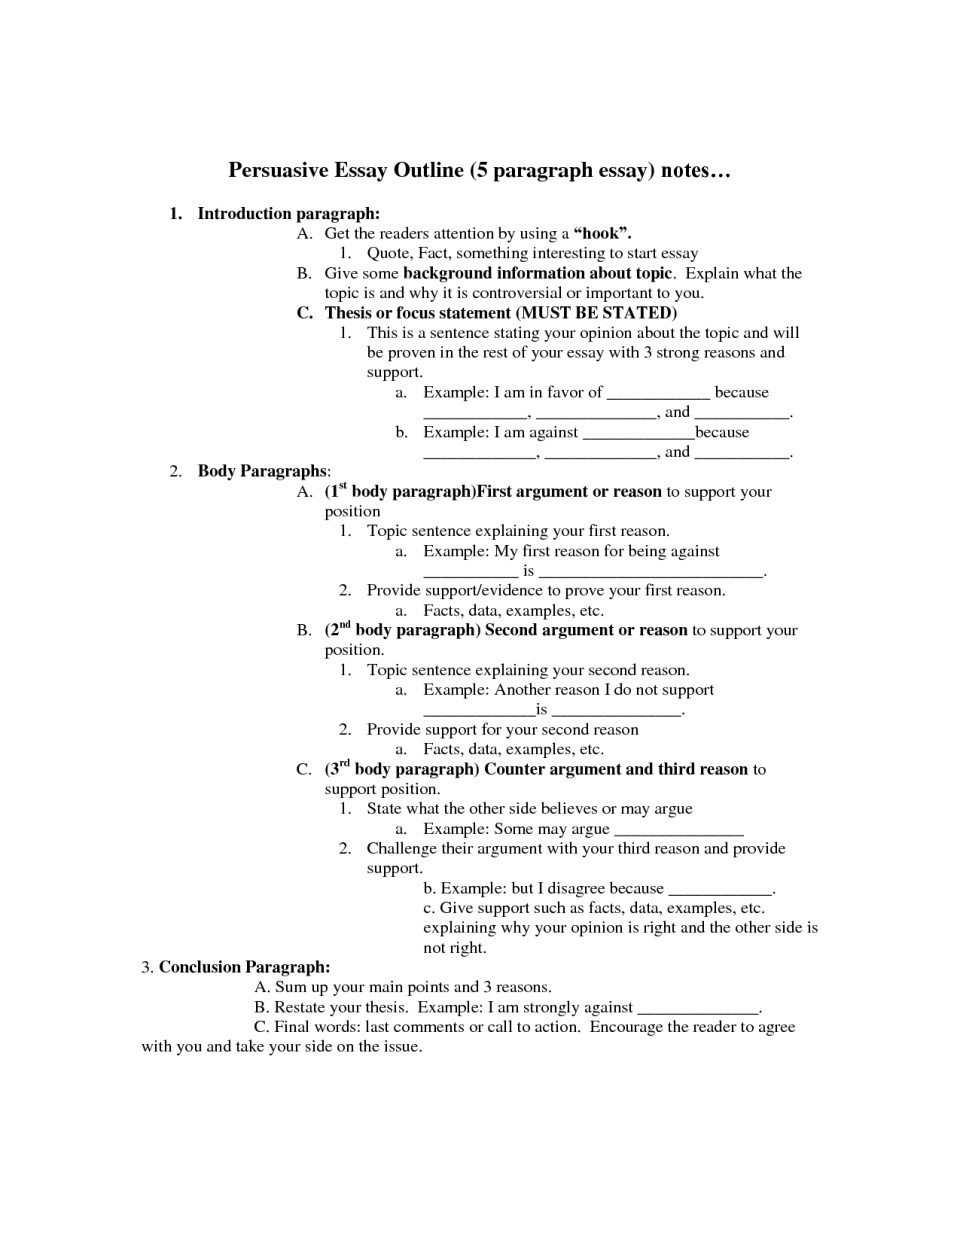 006 Persuasive Essay Outline Unbelievable Argumentative 5th Grade Template Pdf 960